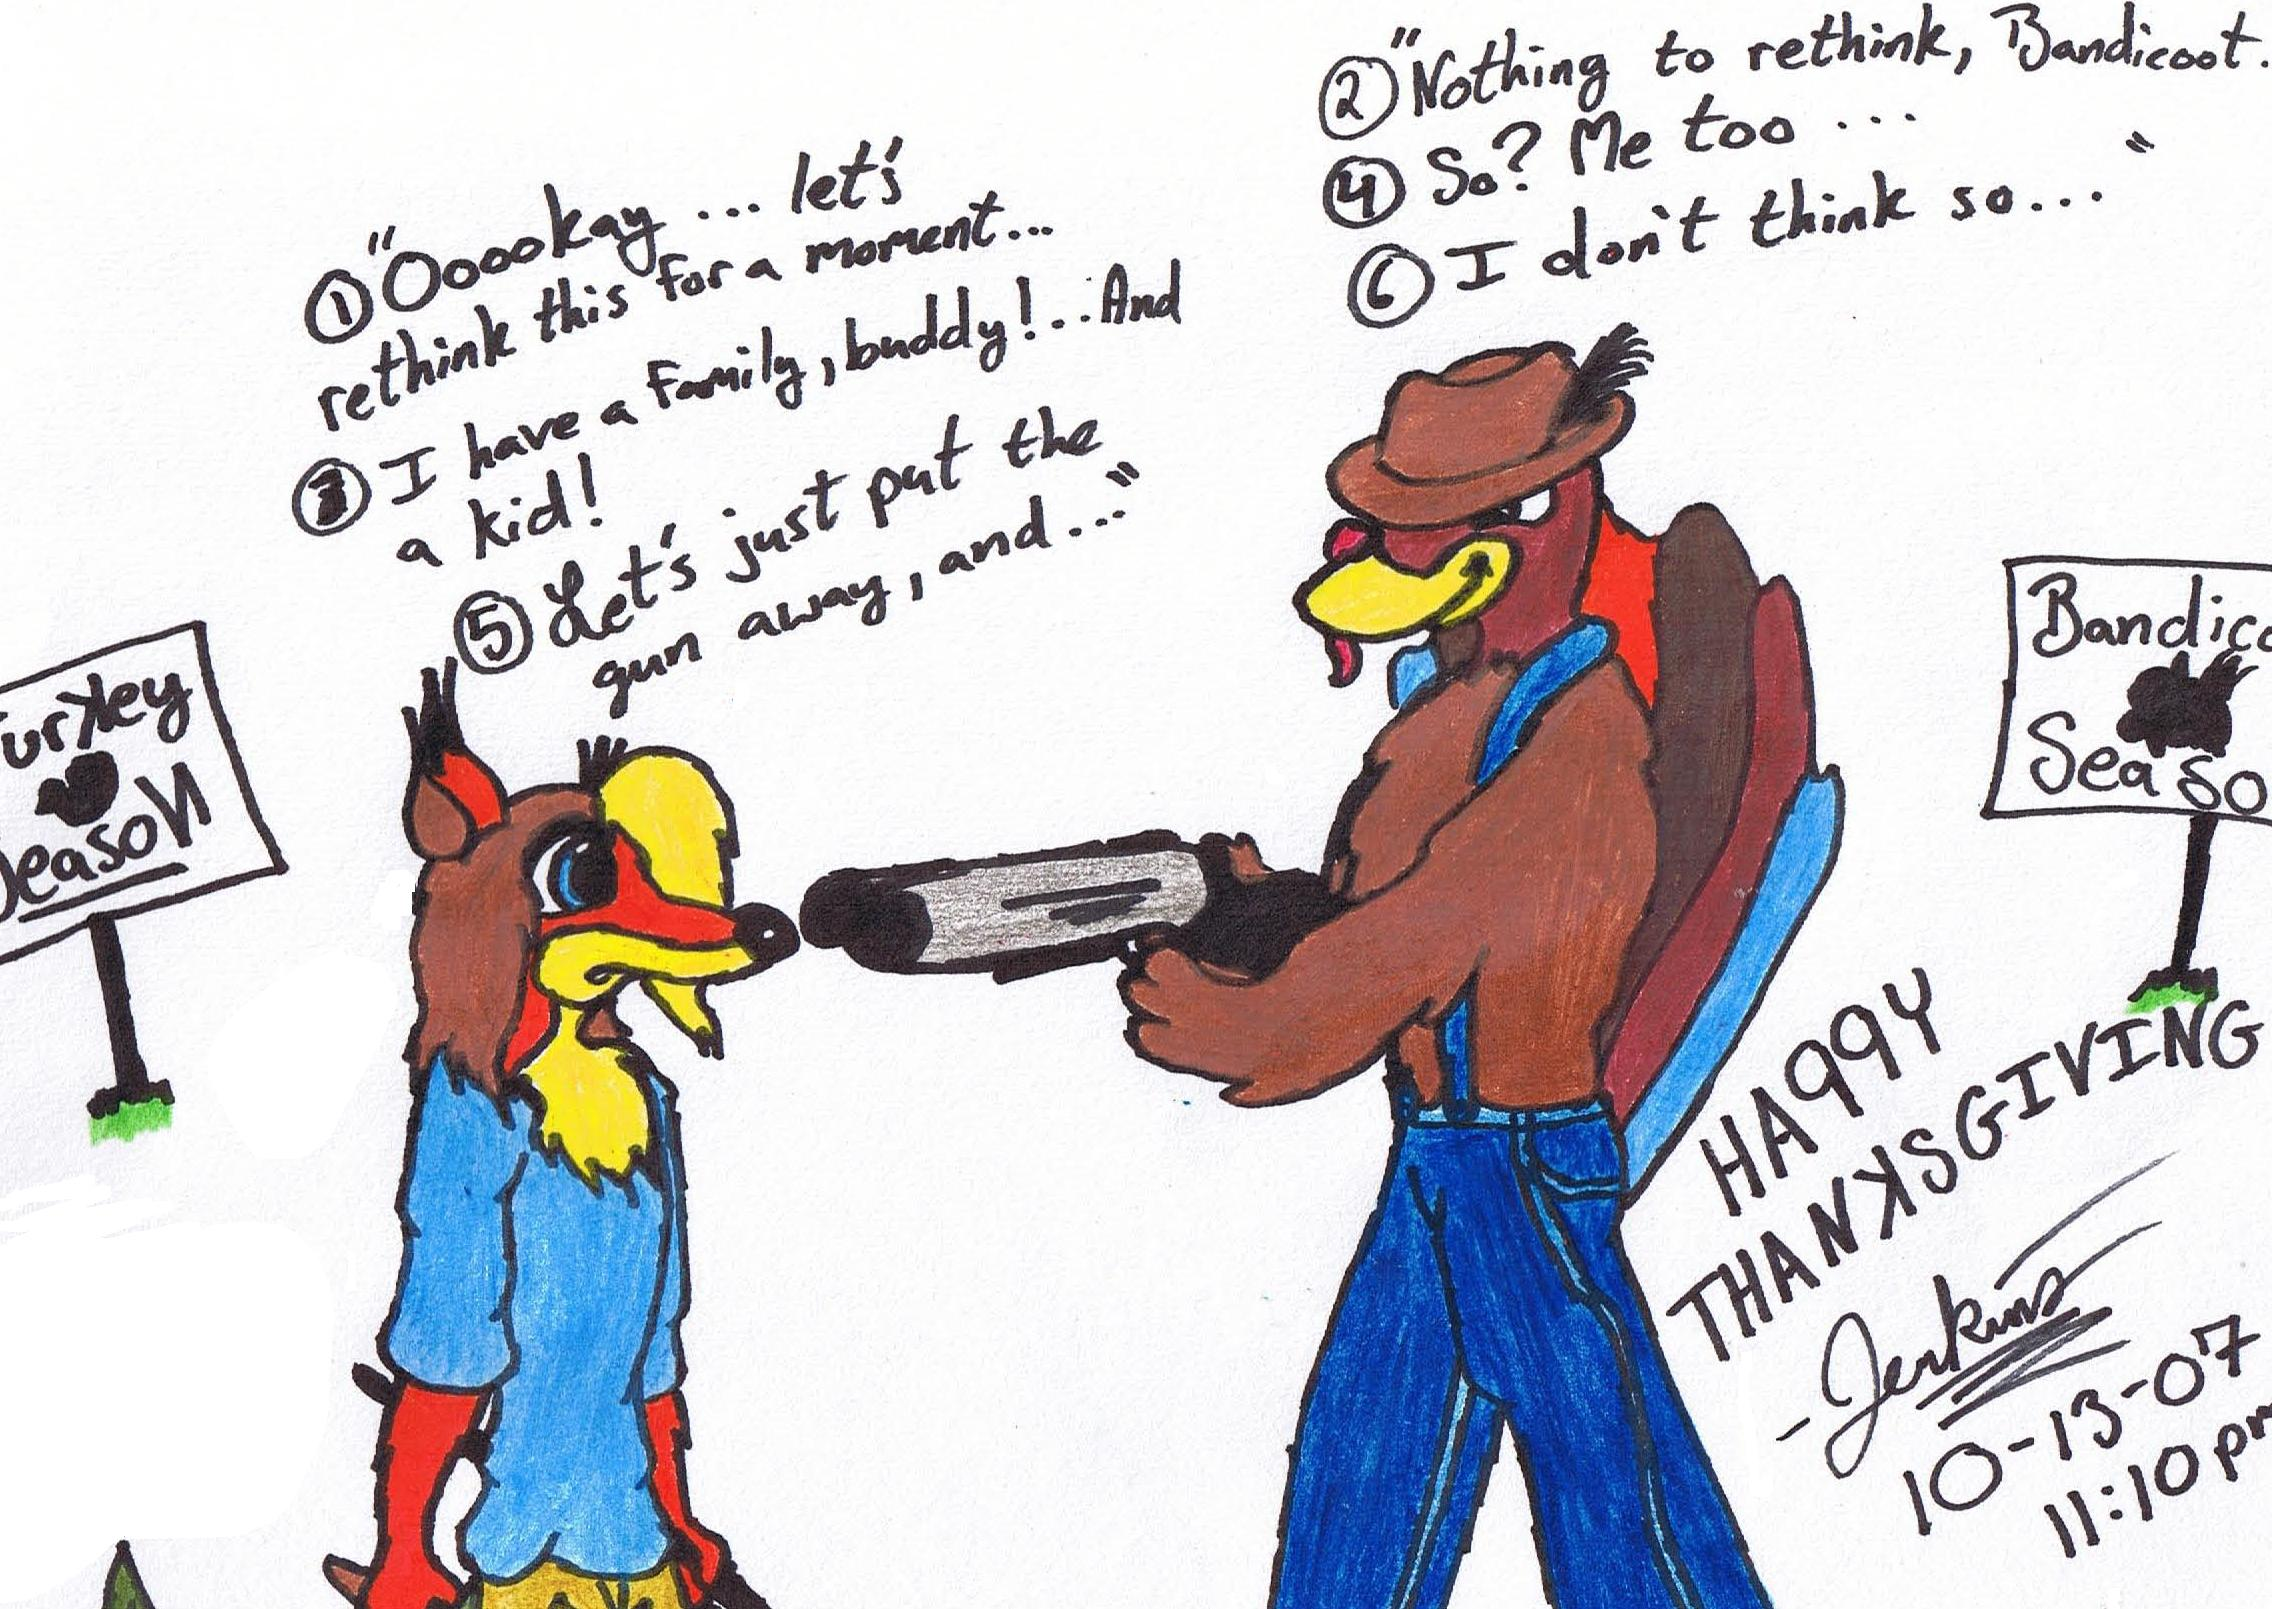 Thanksgiving 2007 by kryptothedolphin